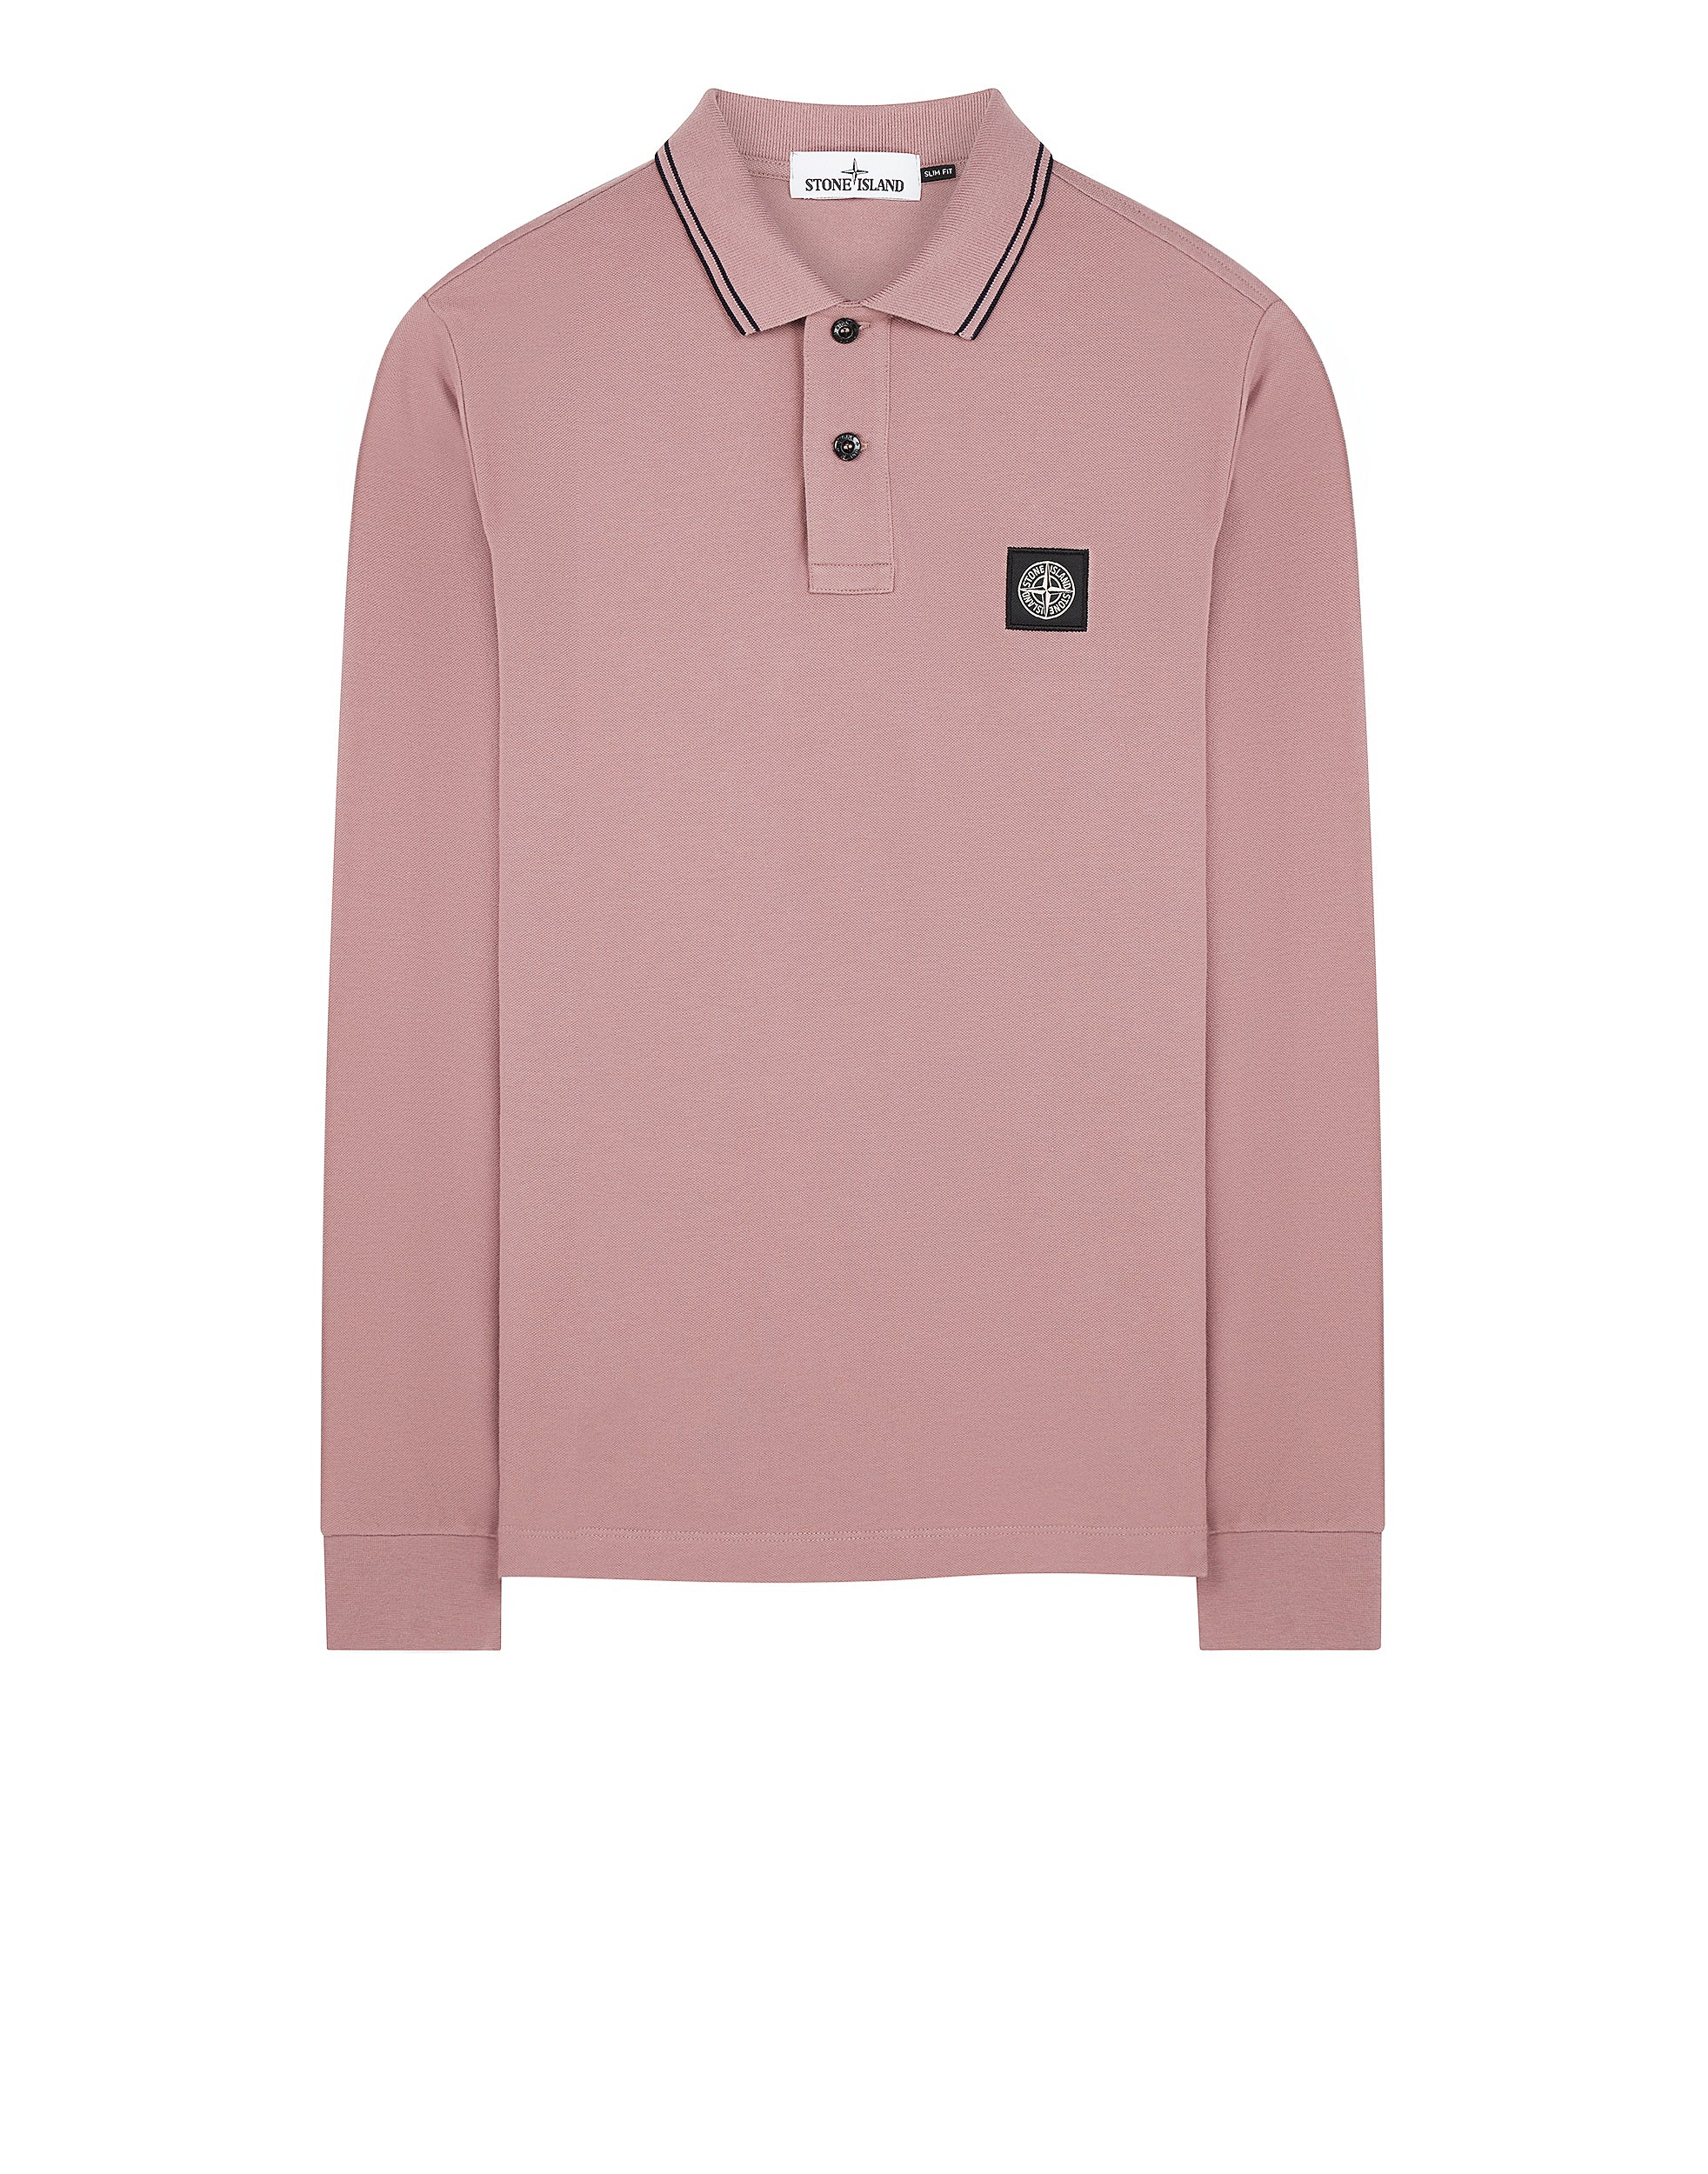 2SS18 Long Sleeve Polo Shirt in Rose Quartz